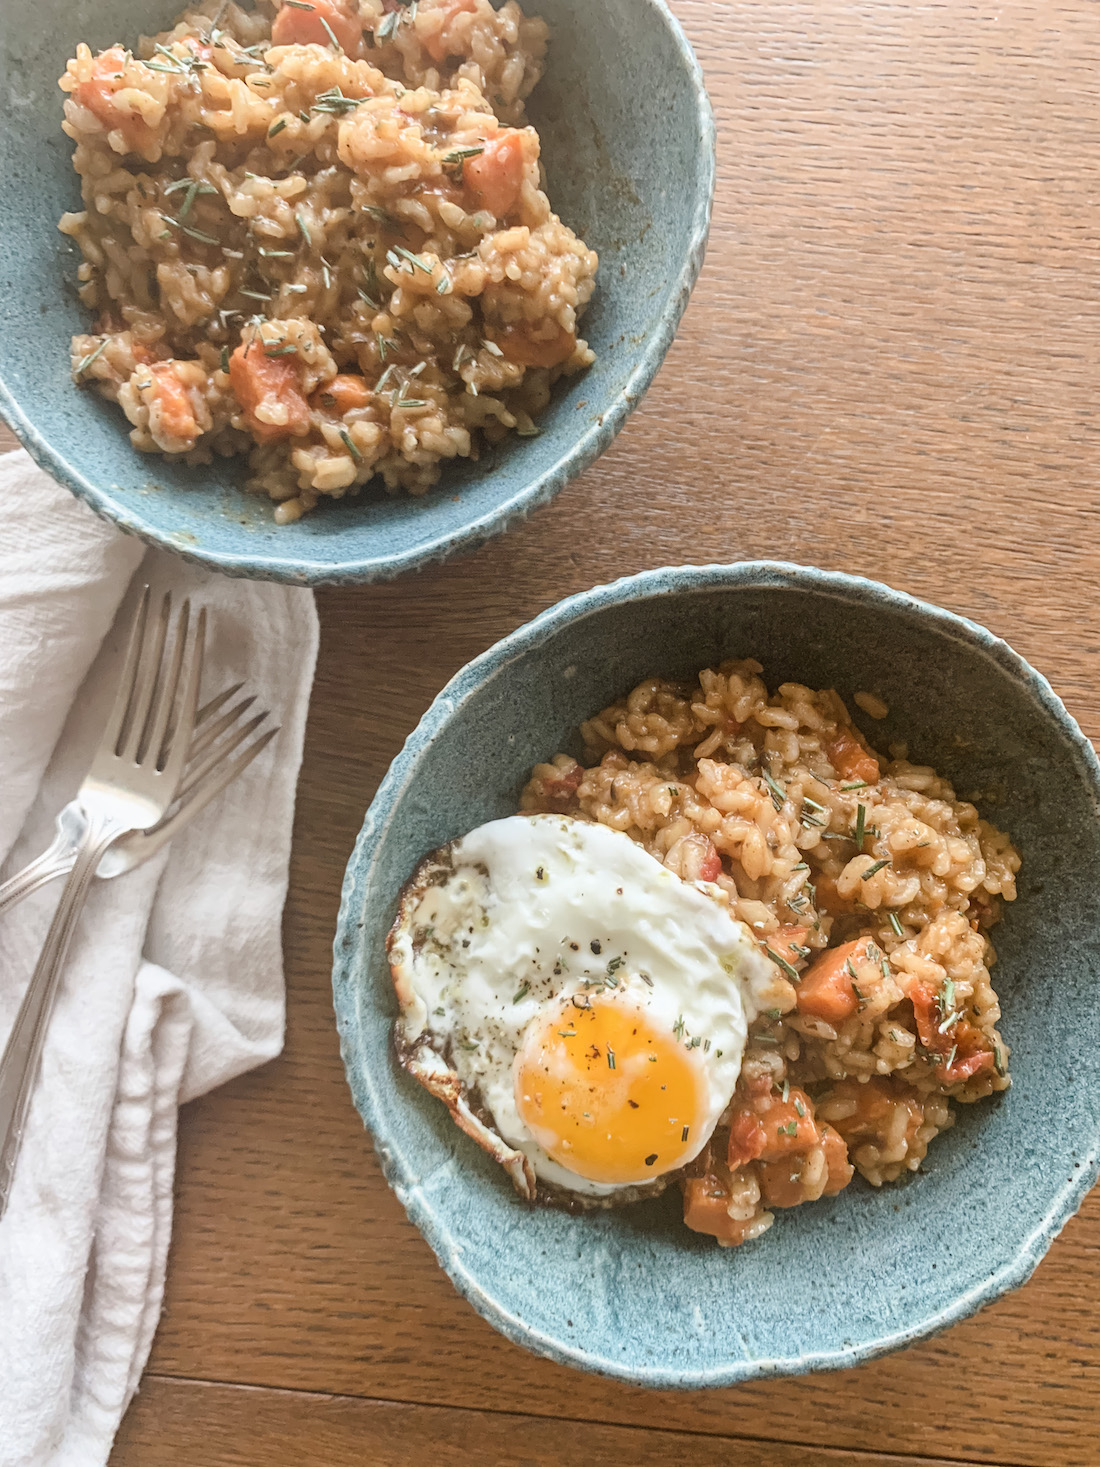 Bowls of Risotto with a Fried Egg